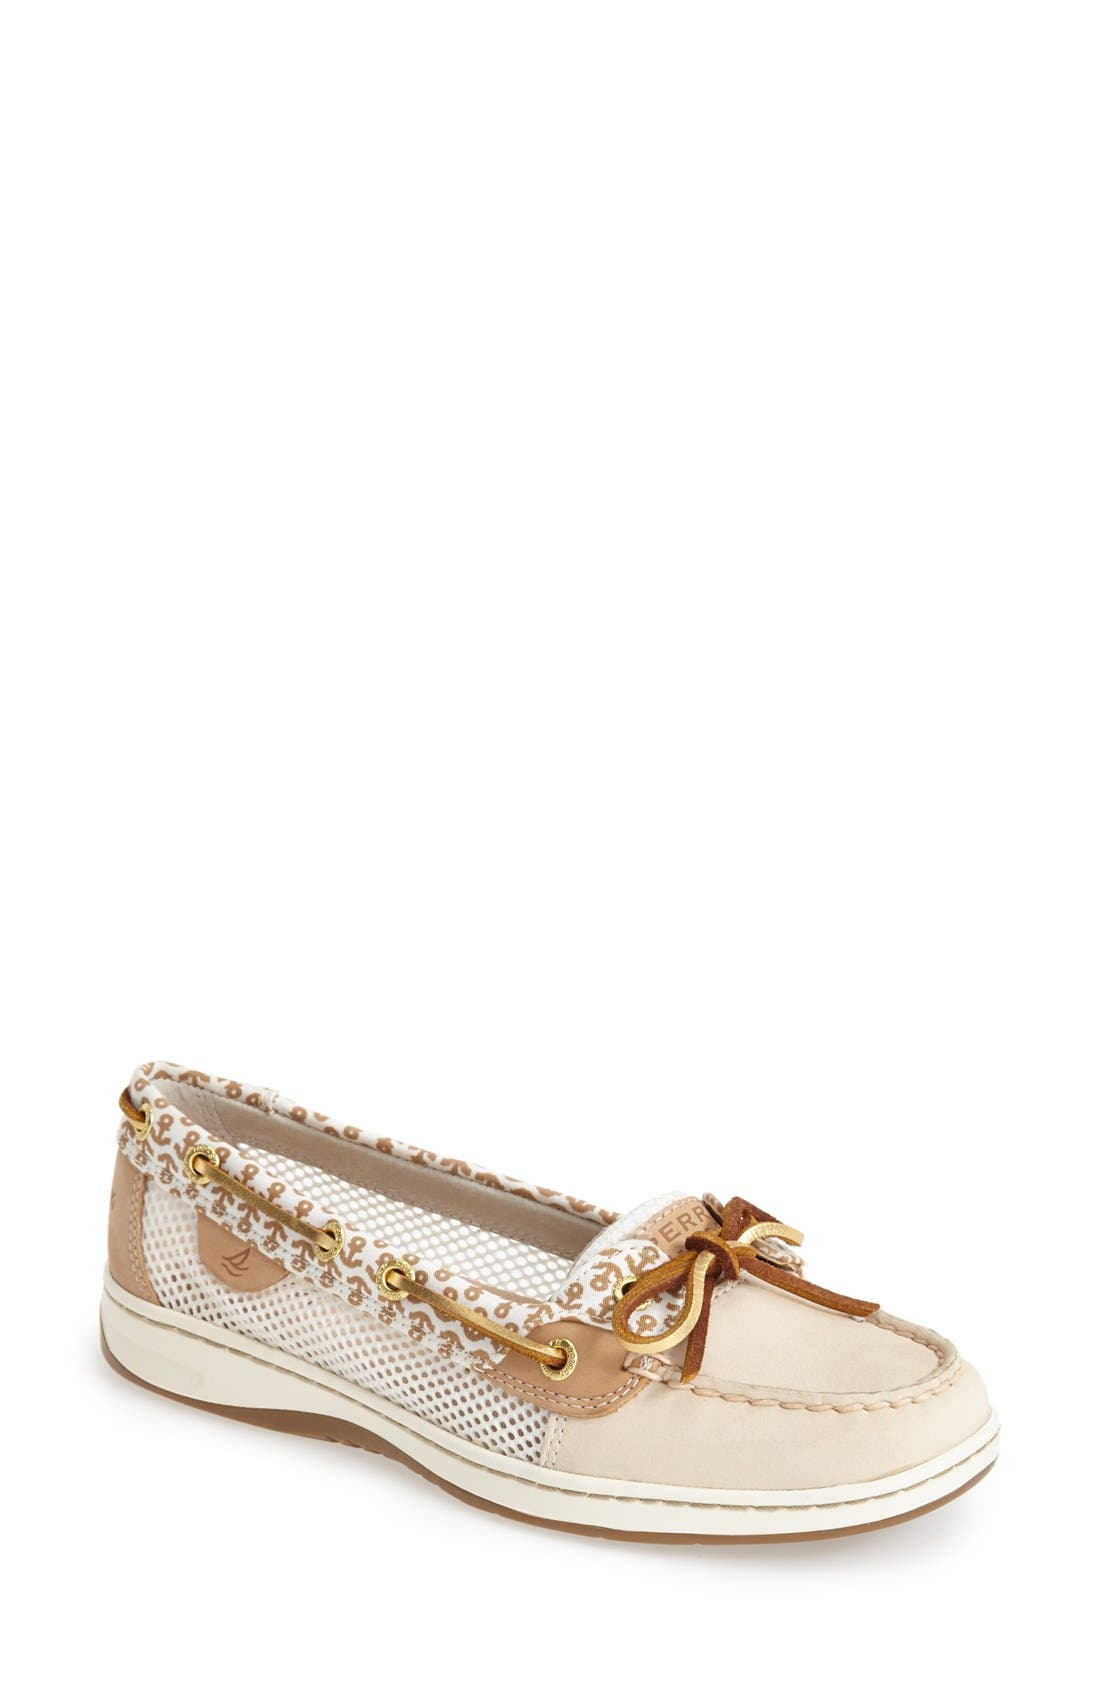 Alternate Image 1 Selected - Sperry 'Angelfish - Critter' Boat Shoe (Women)